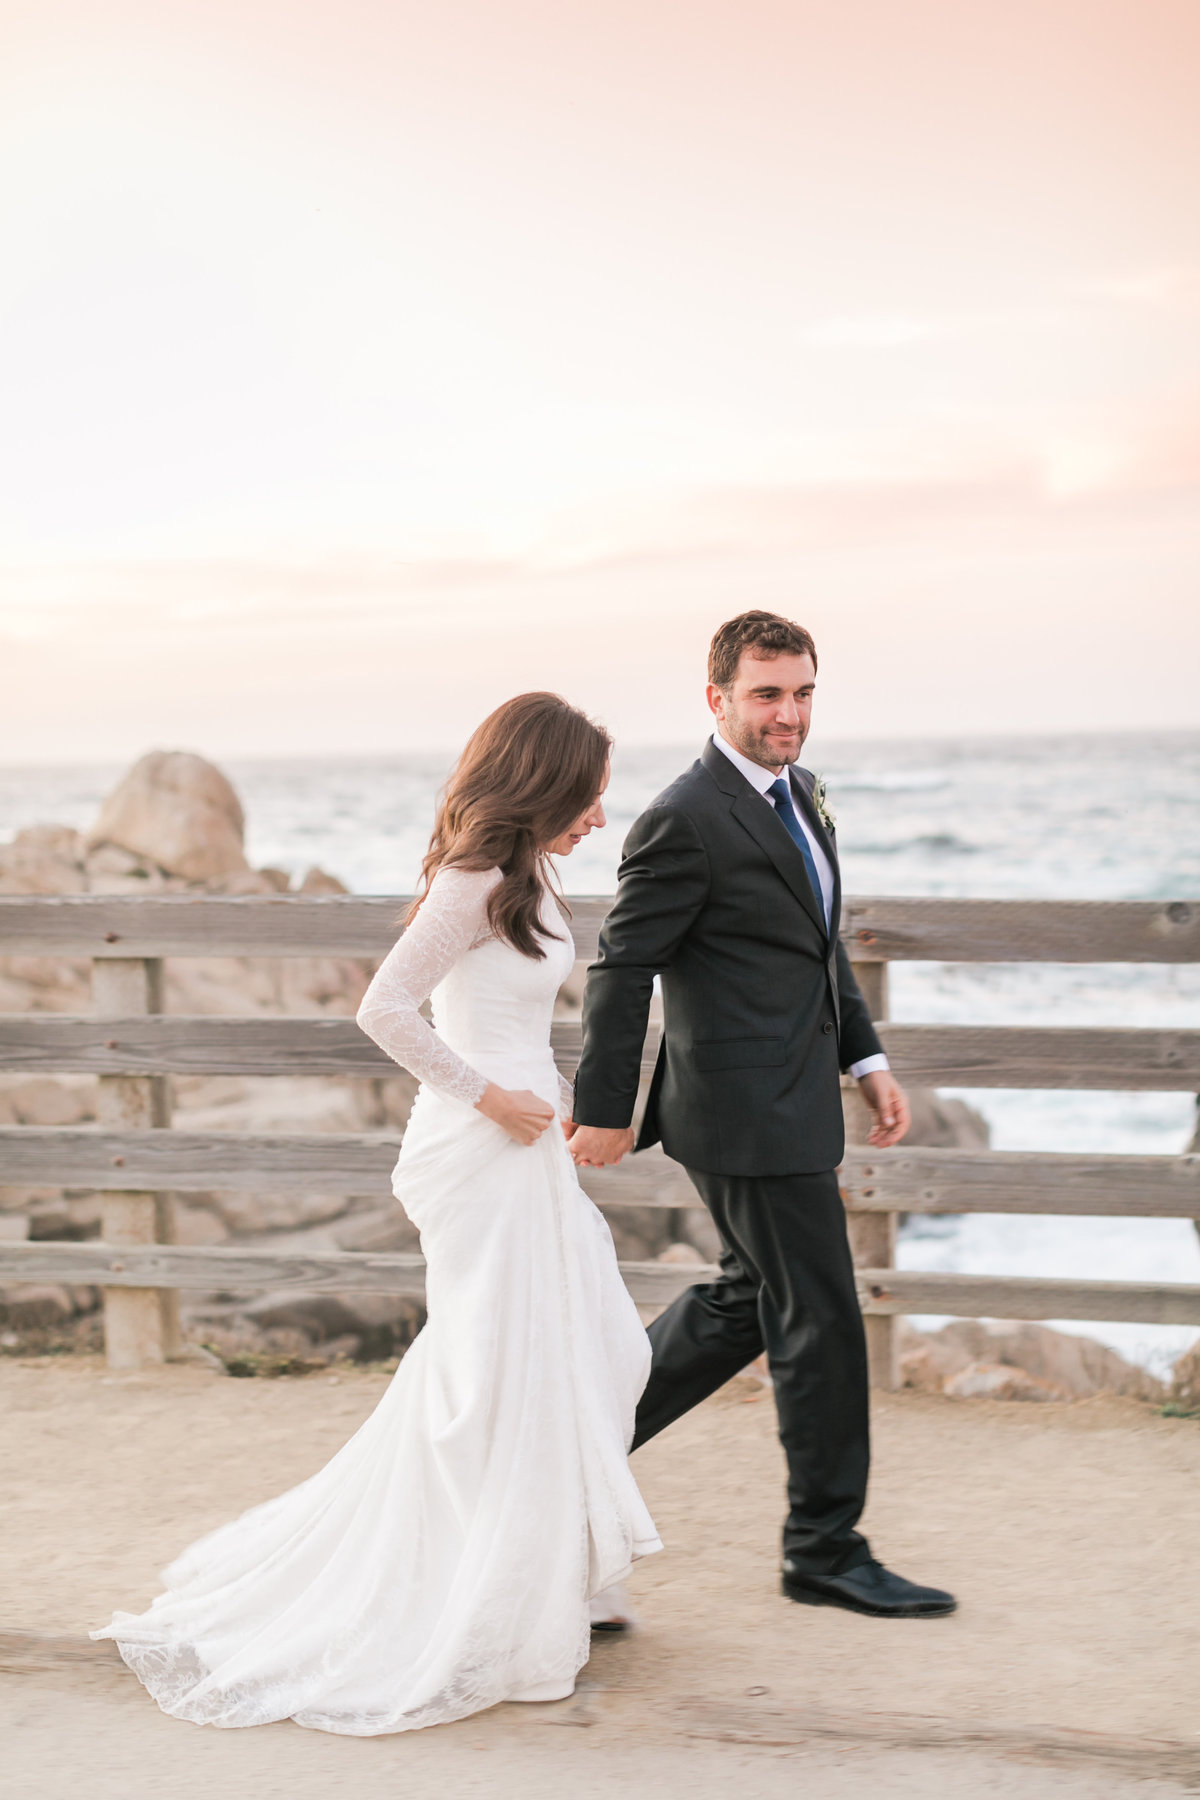 Carmel_Seaside_Chic_Wedding_Valorie_Darling_Photography - 133 of 134